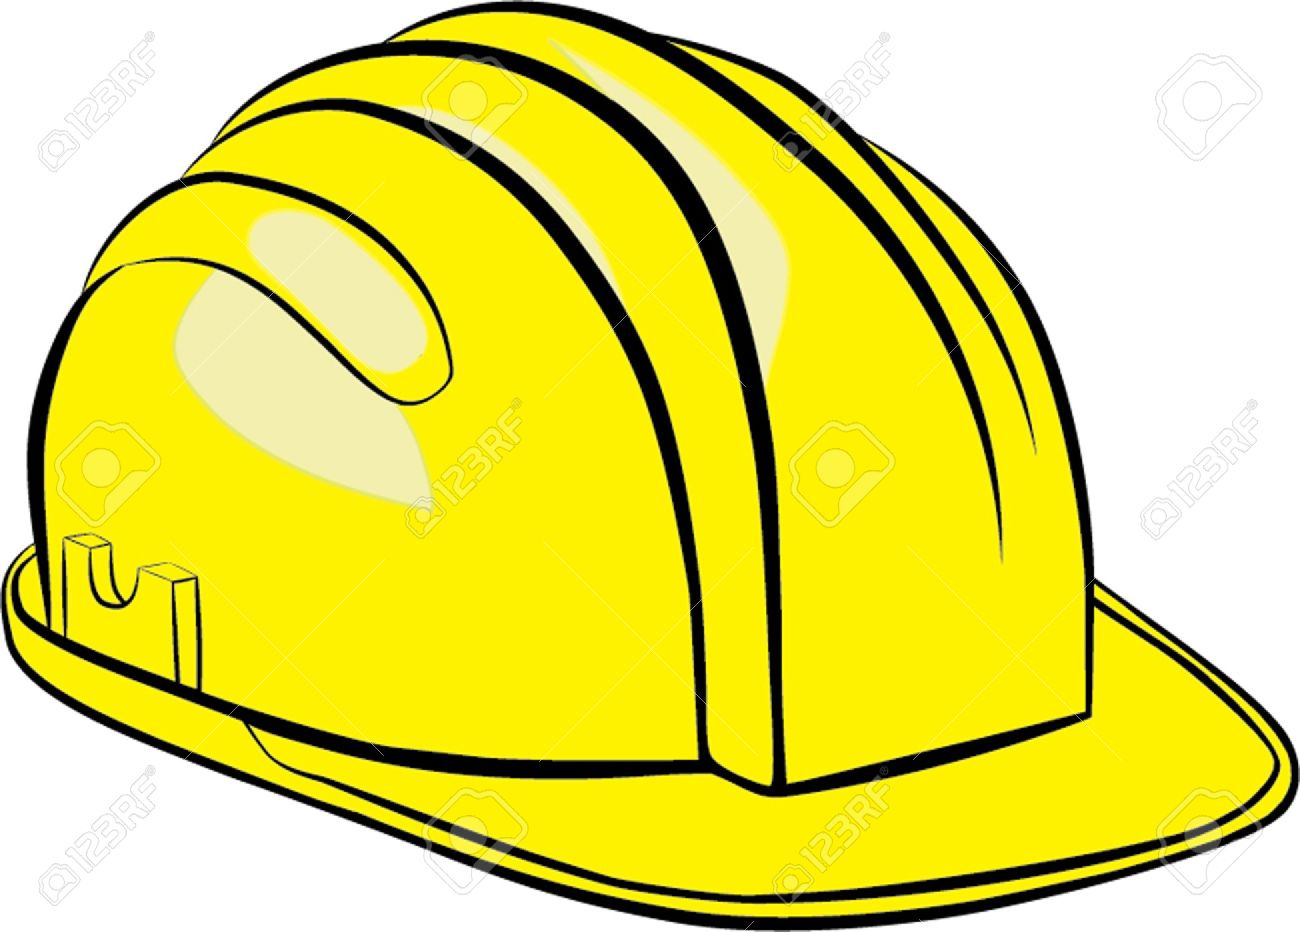 construction helmet isolated illustration royalty free cliparts rh 123rf com Construction Hat Clip Art Template construction hat clipart free